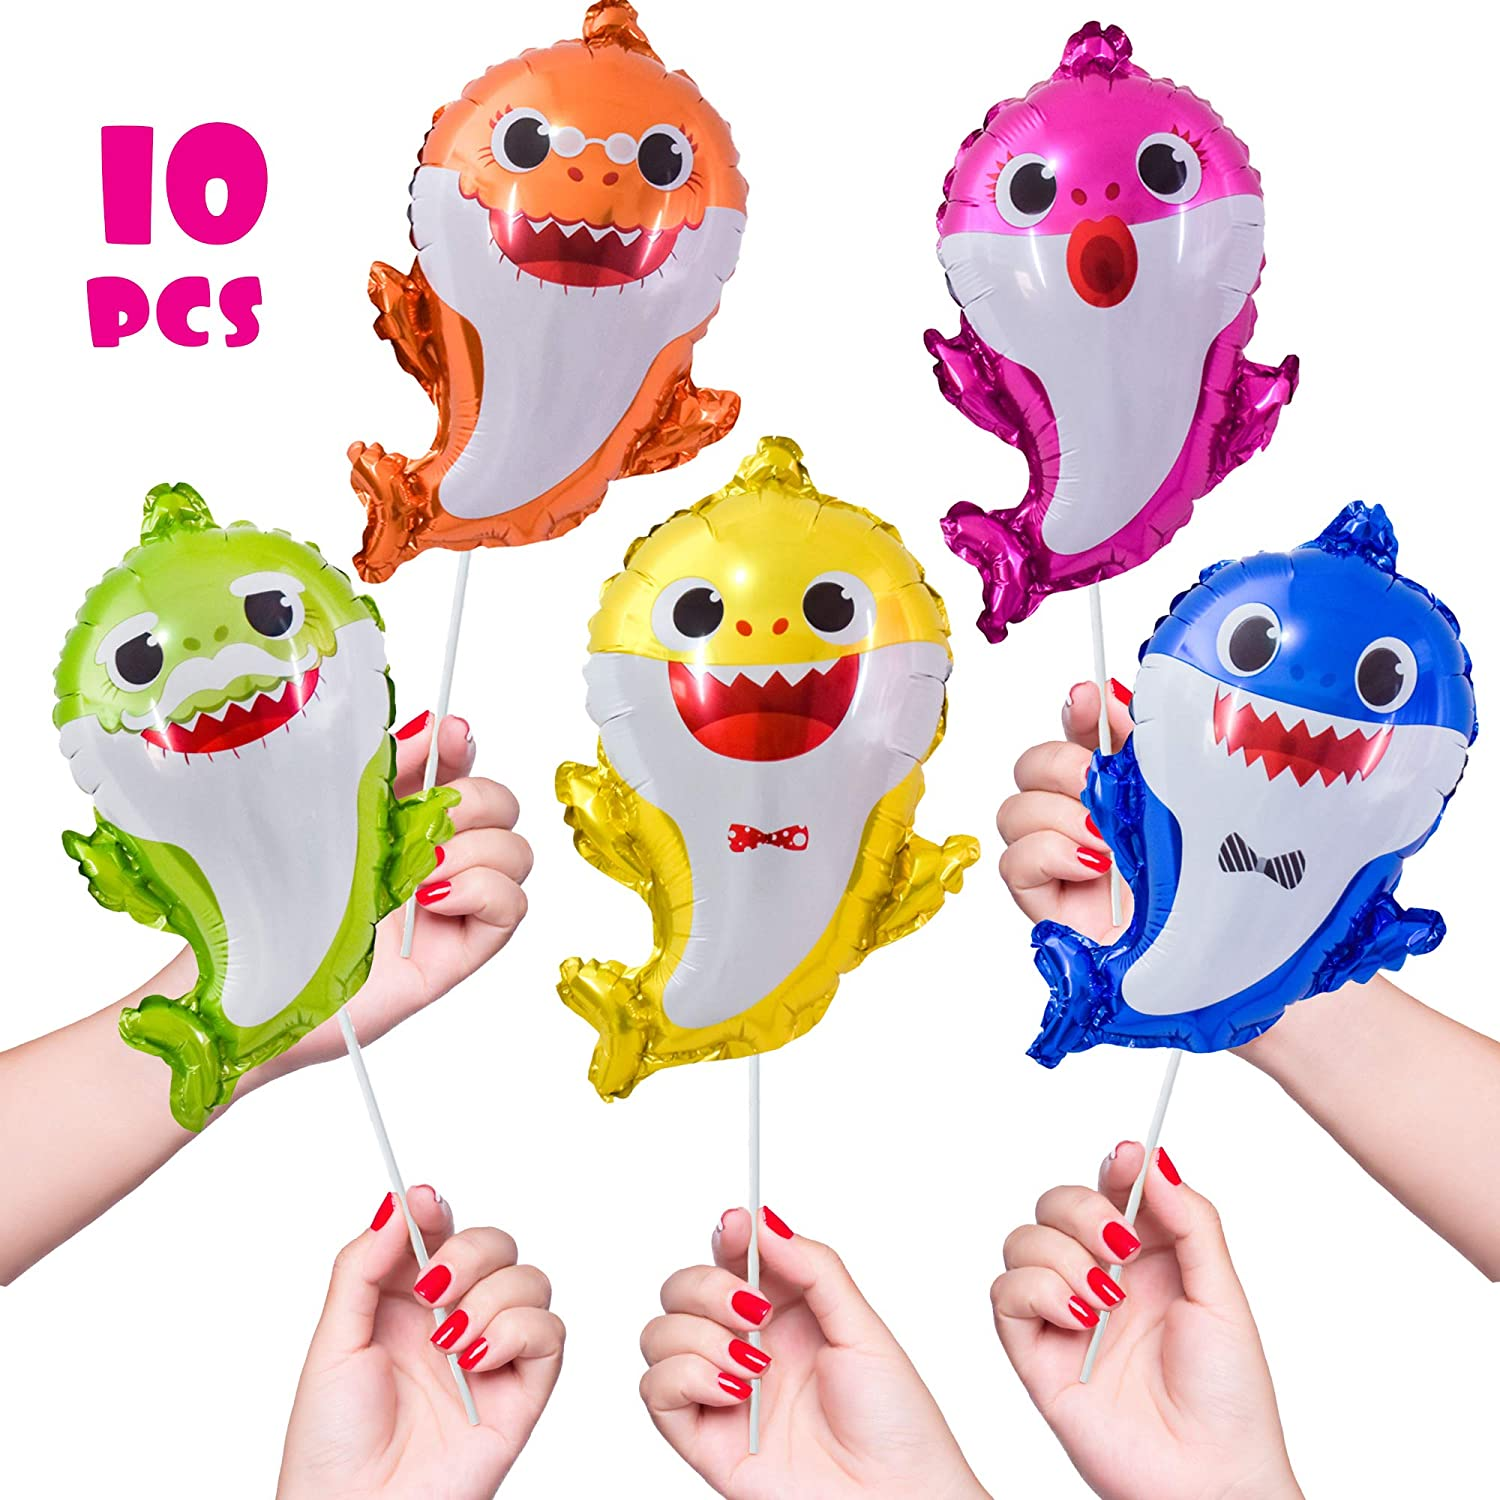 OMG Party Factory - Handheld Baby Shark Balloons - Baby Shark Party Favors - Mylar Foil Party Supplies Ballons - All Family Members Included Doo Doo ...